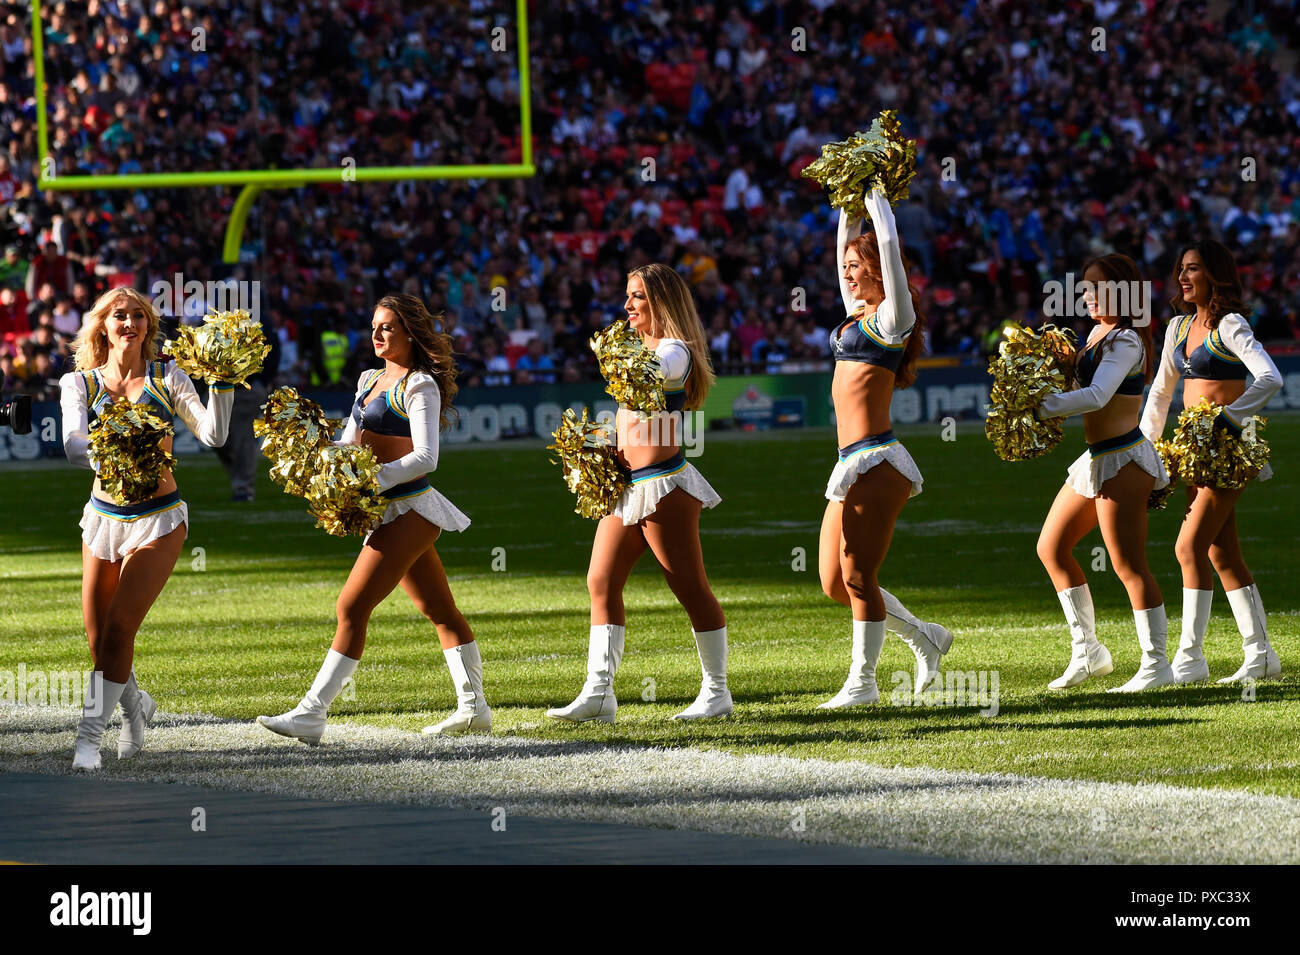 London, UK.  21 October 2018. Chargers cheerleaders at the Tennessee Titans at Los Angeles Chargers NFL game at Wembley Stadium, the second of the NFL London 2018 games.  Credit: Stephen Chung / Alamy Live News - Stock Image